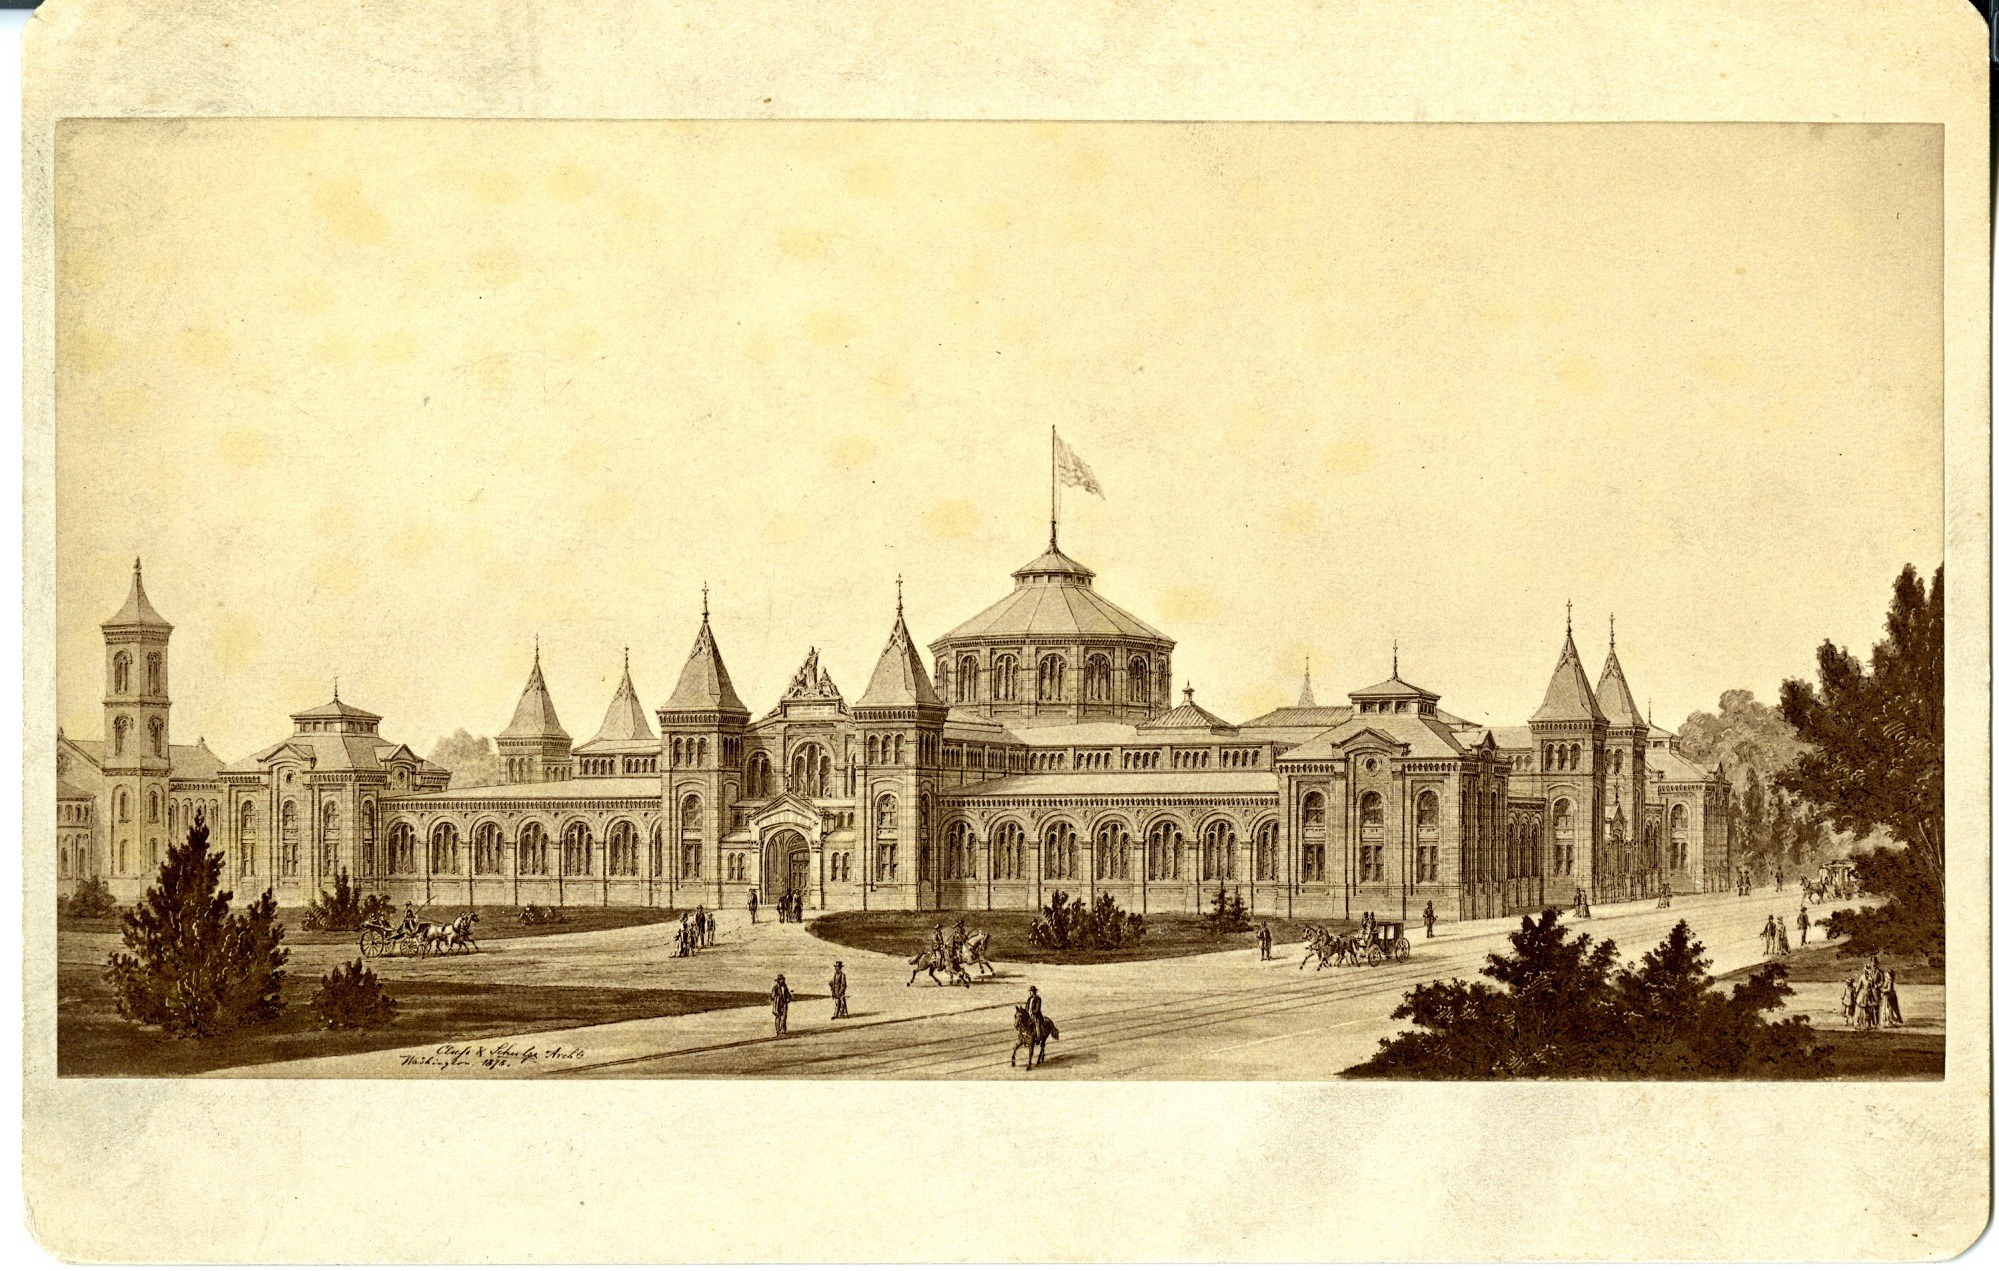 Rendering of the new United States National Museum, now the Arts & Industries, building designed by architects Adolph Cluss and Rudolph Schulze, 1878. Smithsonian Institution Archives, negative number SIA2011-1079.